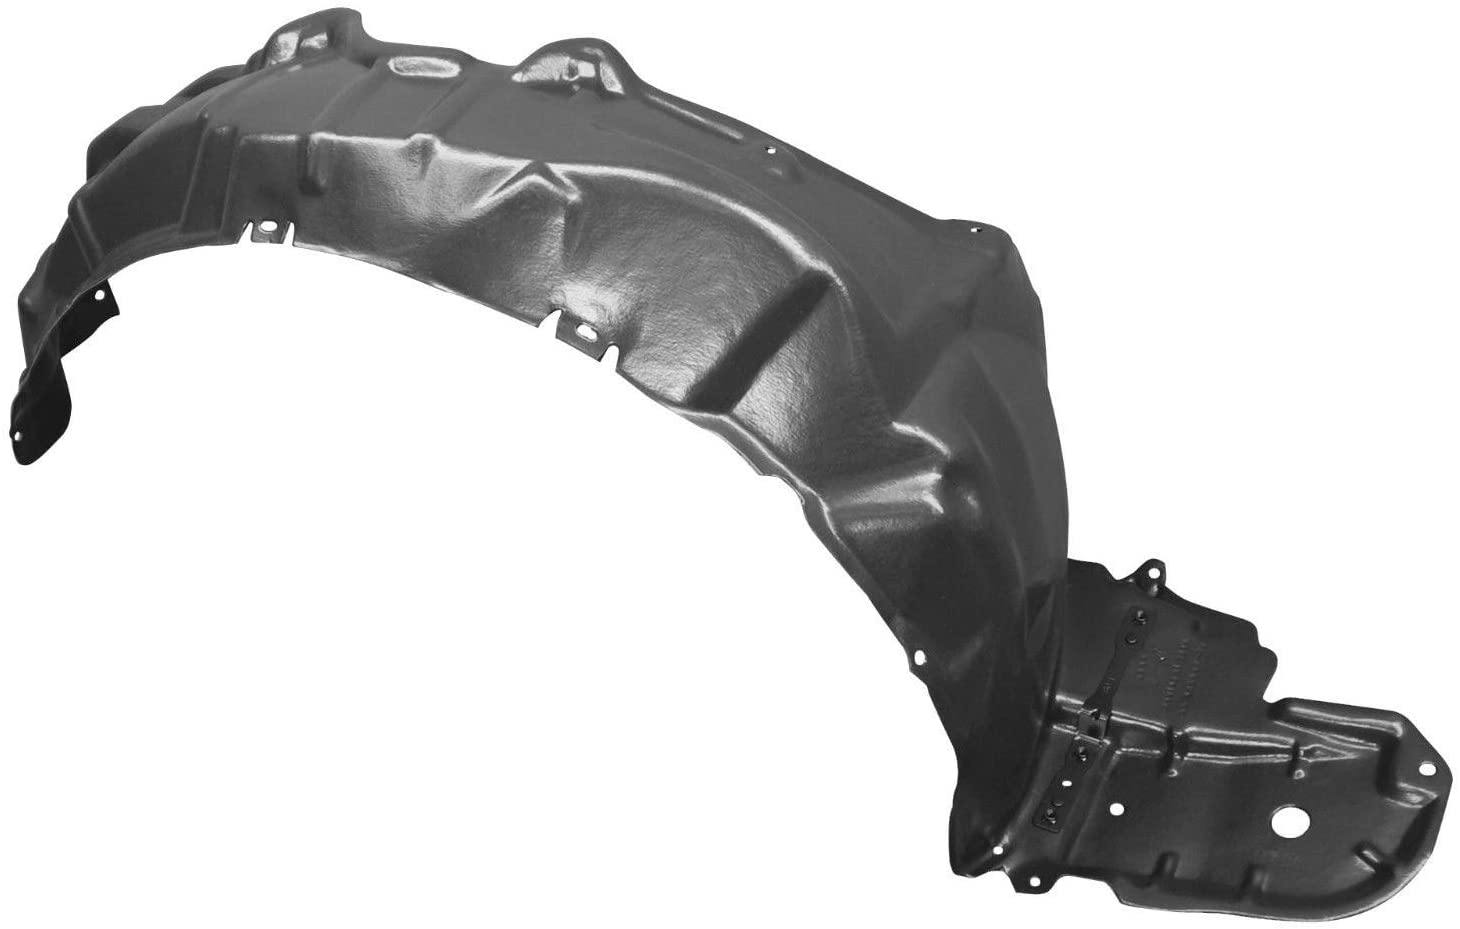 Parts N Go Prius National uniform free shipping 10-15 Right Front Liner Bombing free shipping Fender Side Shiel Guard